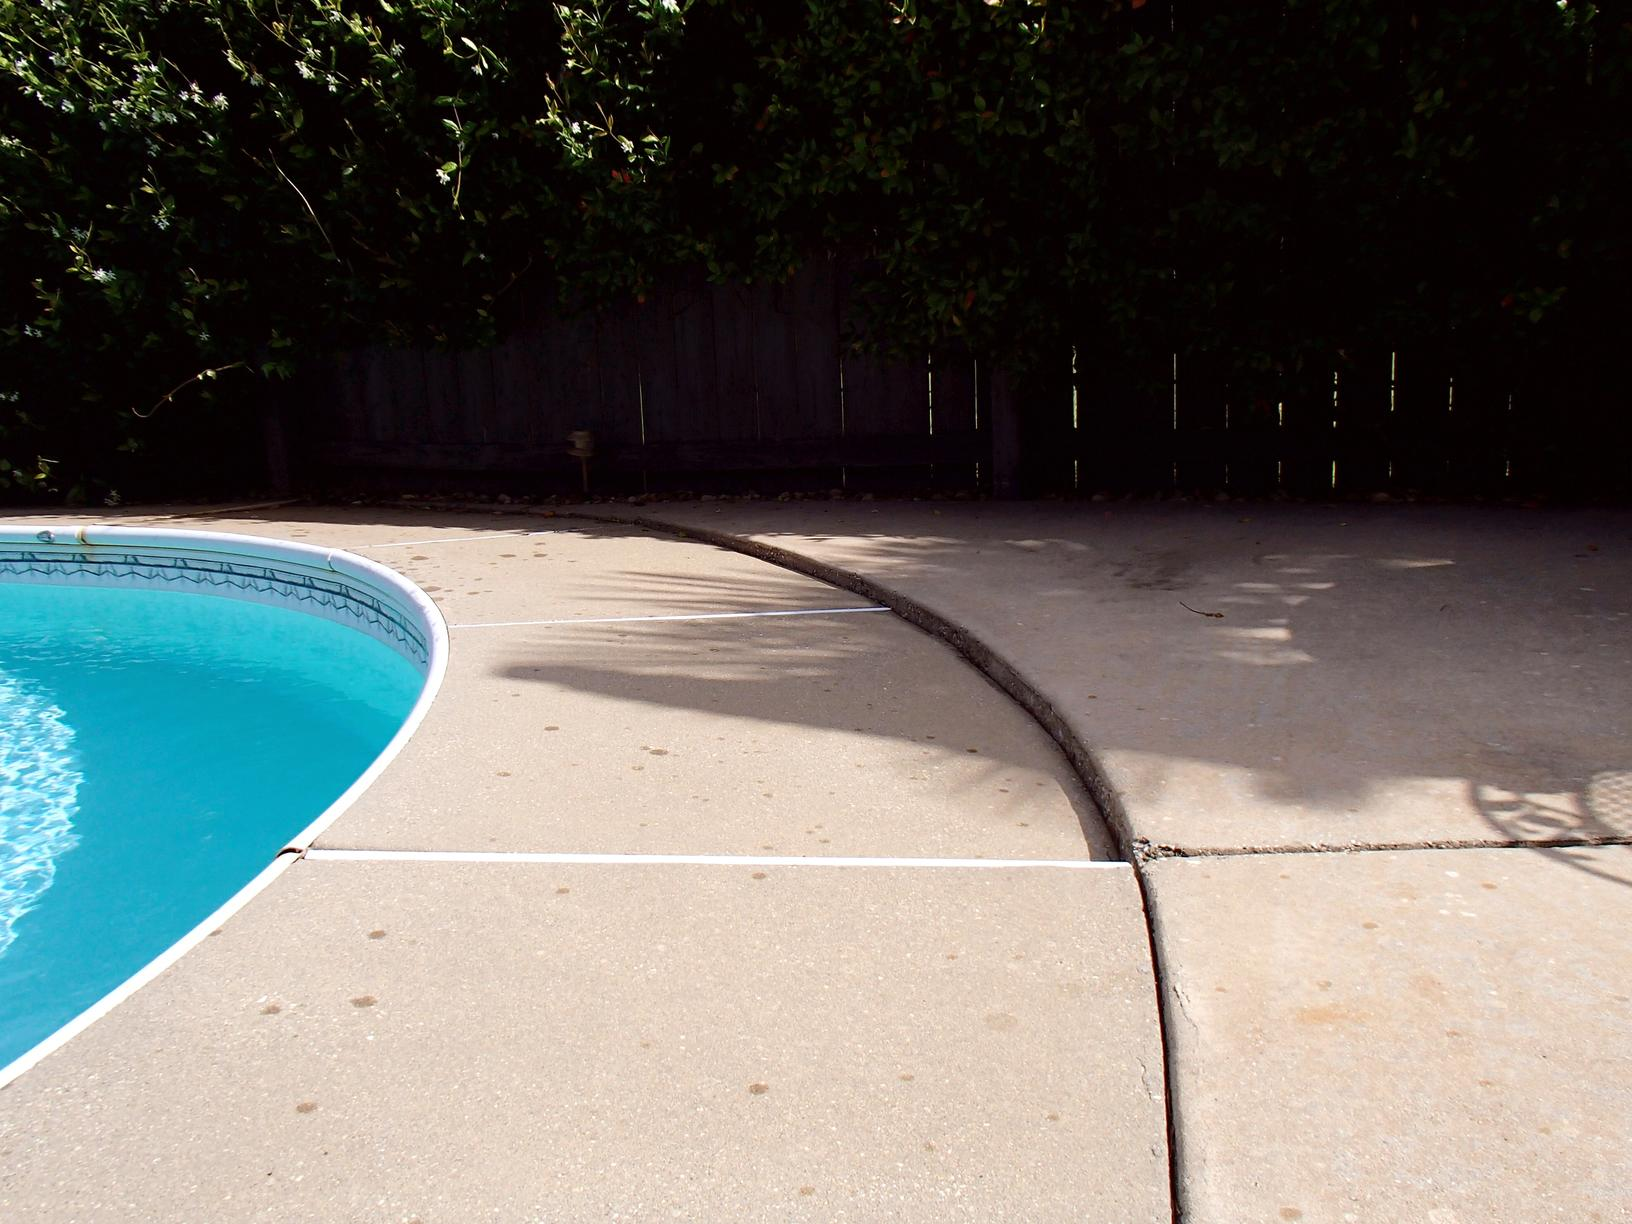 Pool Deck Lifted with PolyLevel - Before Photo